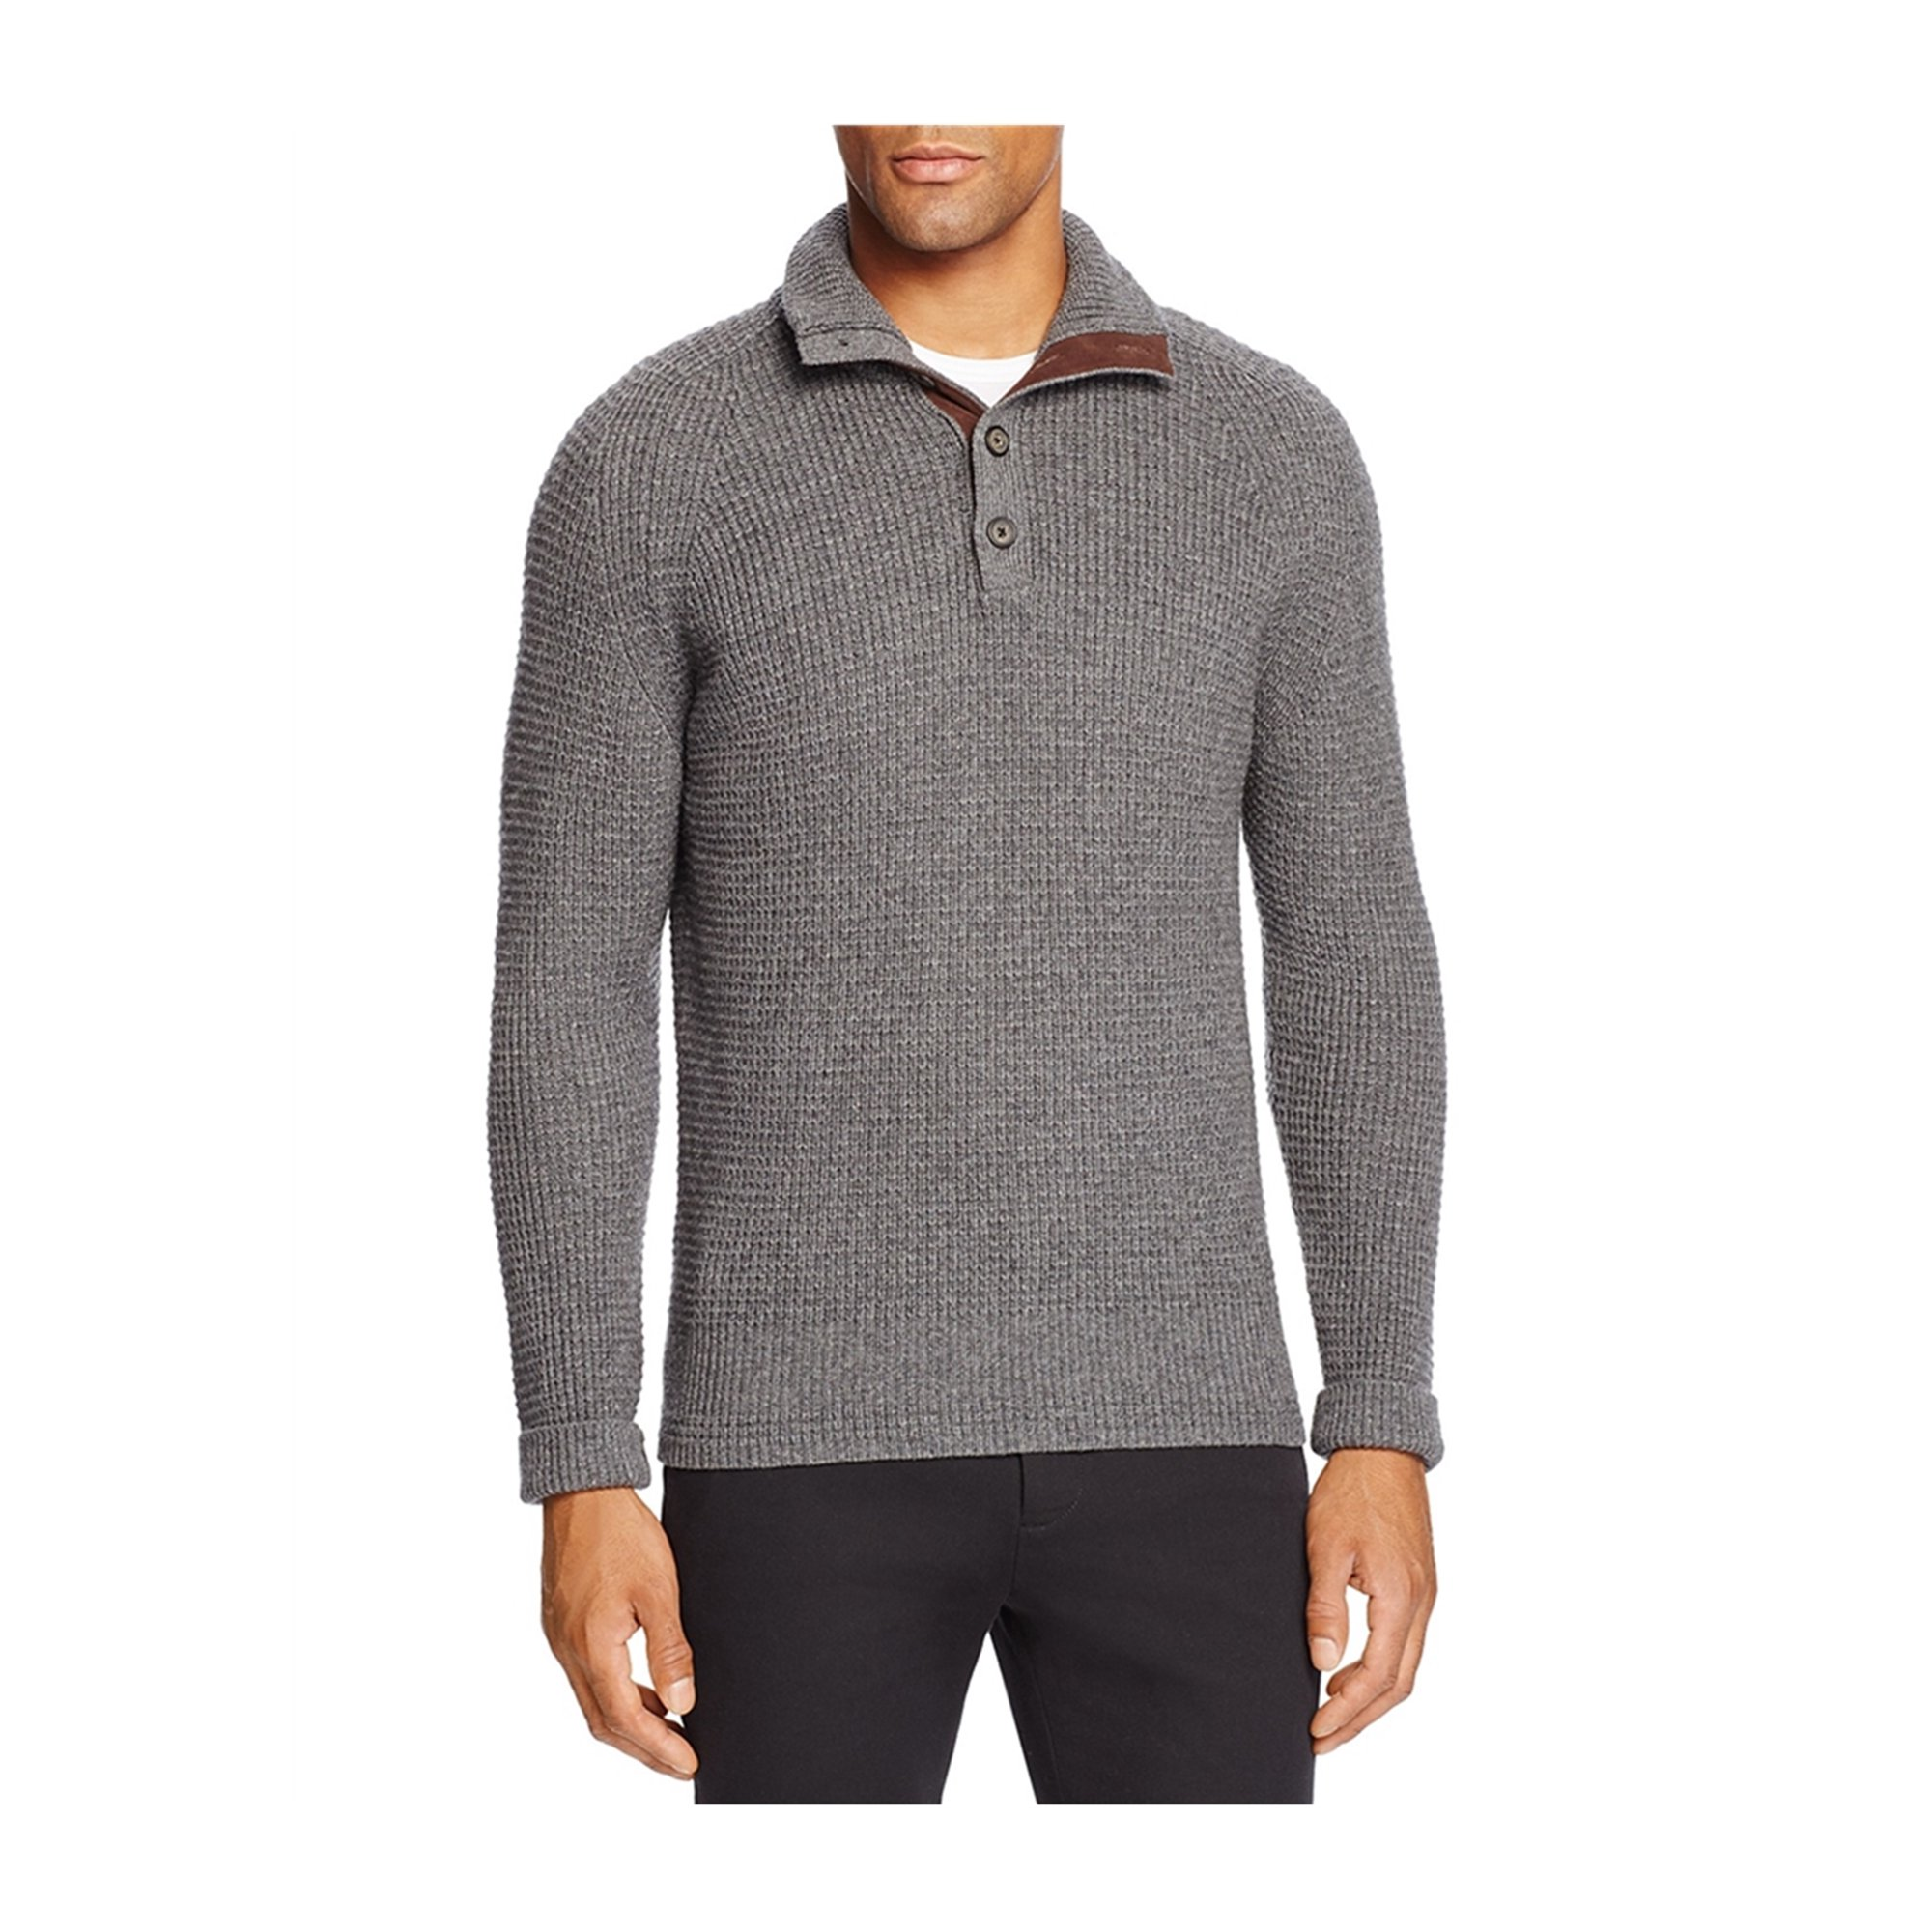 Bloomingdale's Mens Cashmere Blend Pullover Sweater